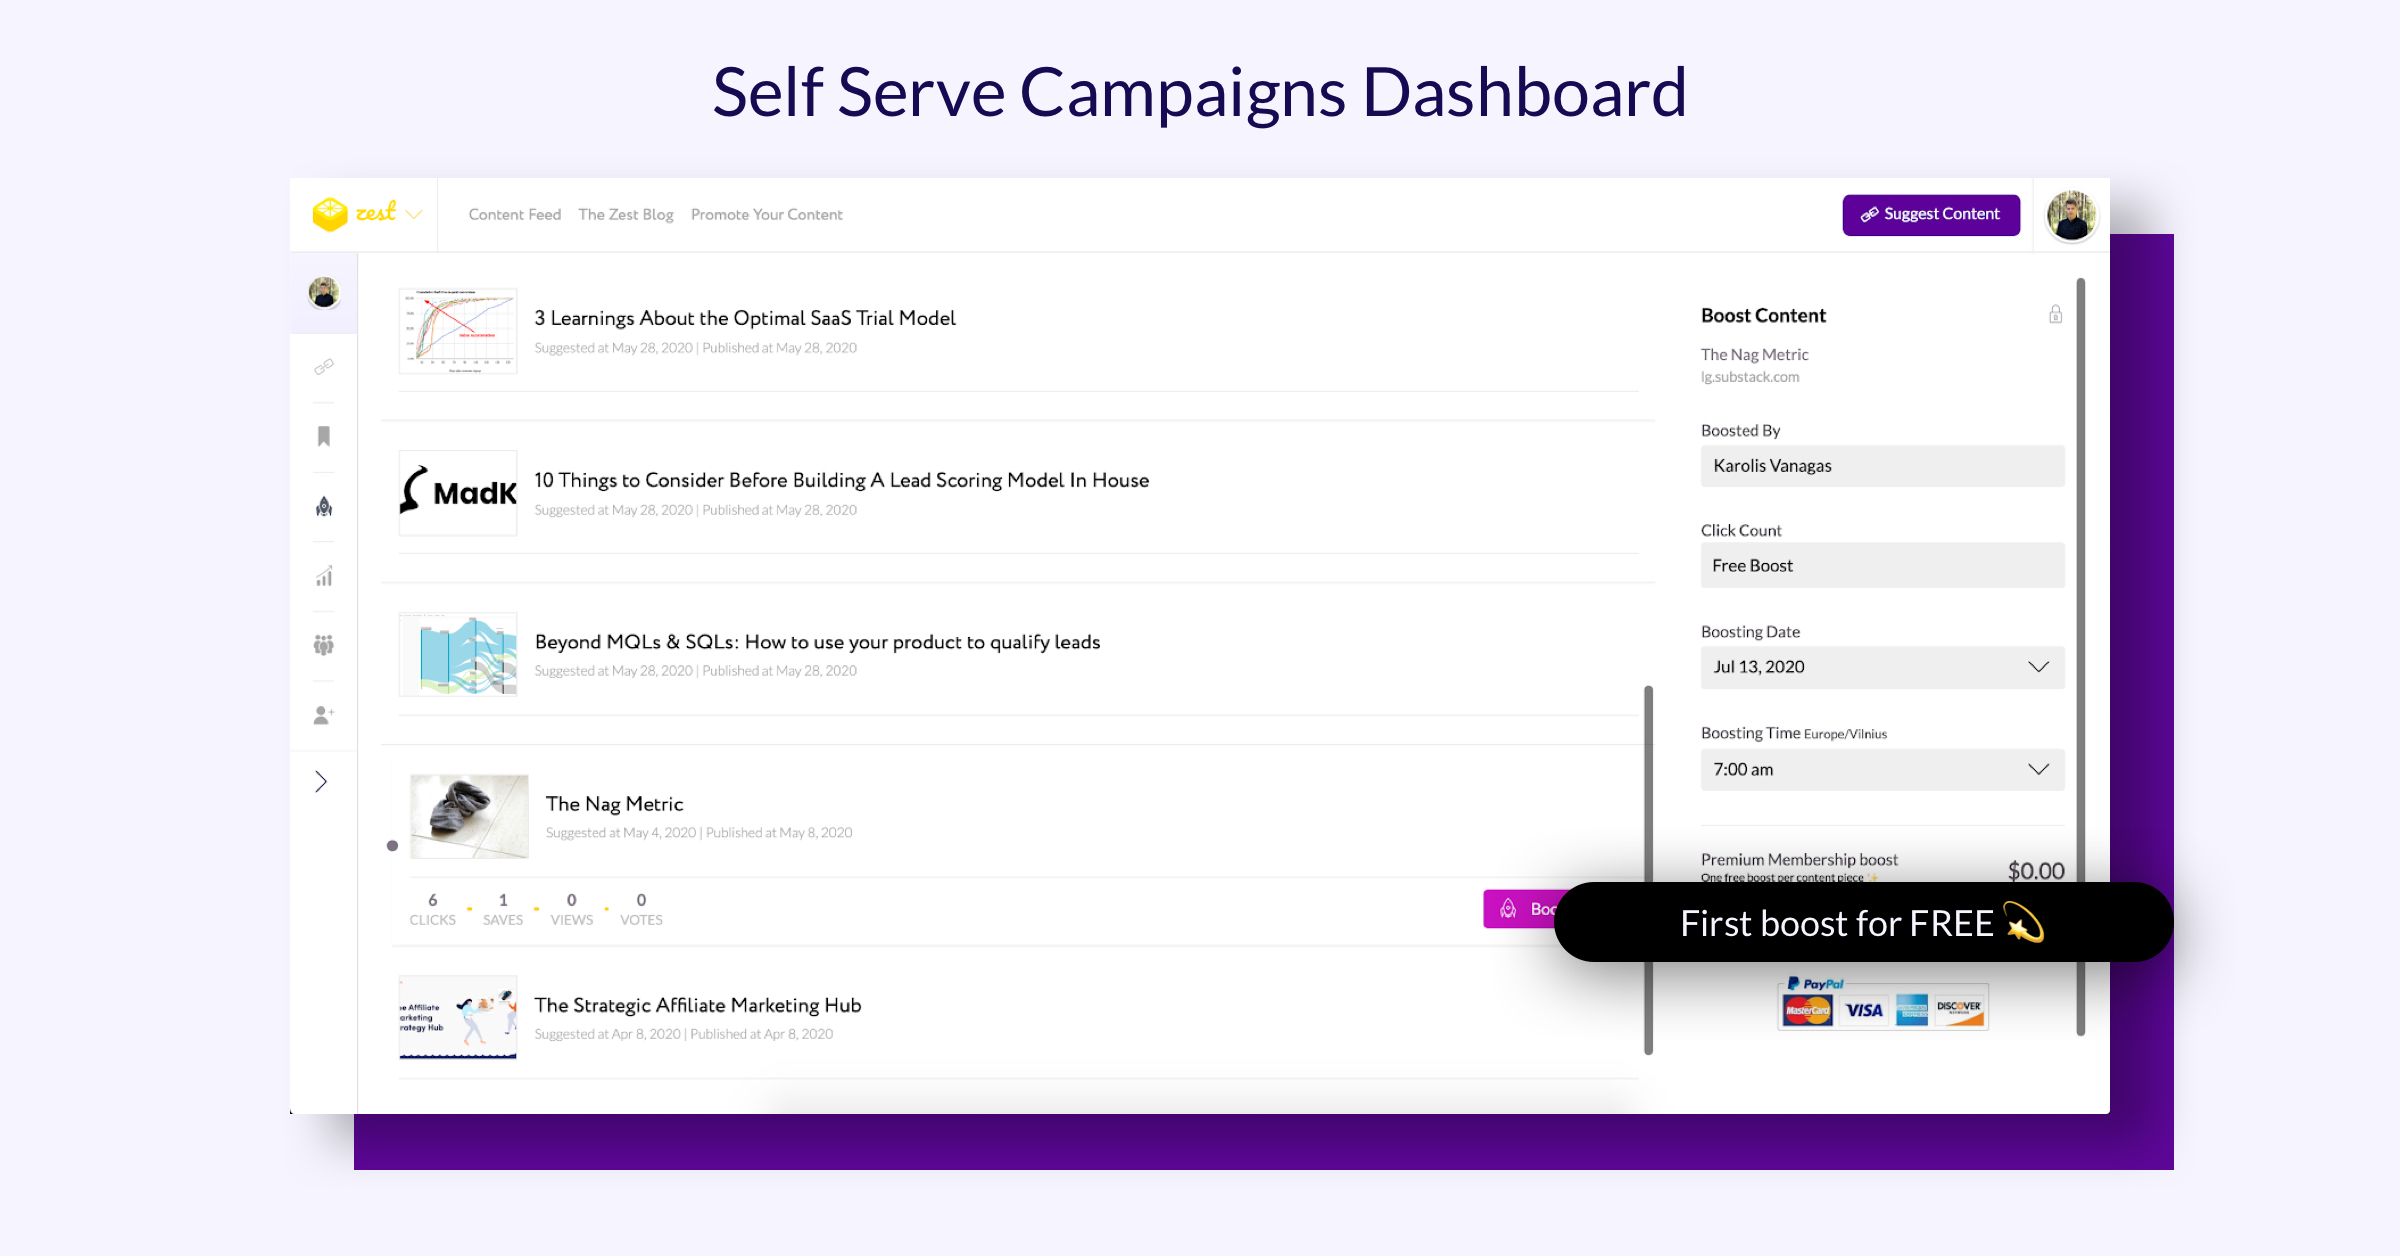 Screenshot of Zest's self-serve campaign dashboard